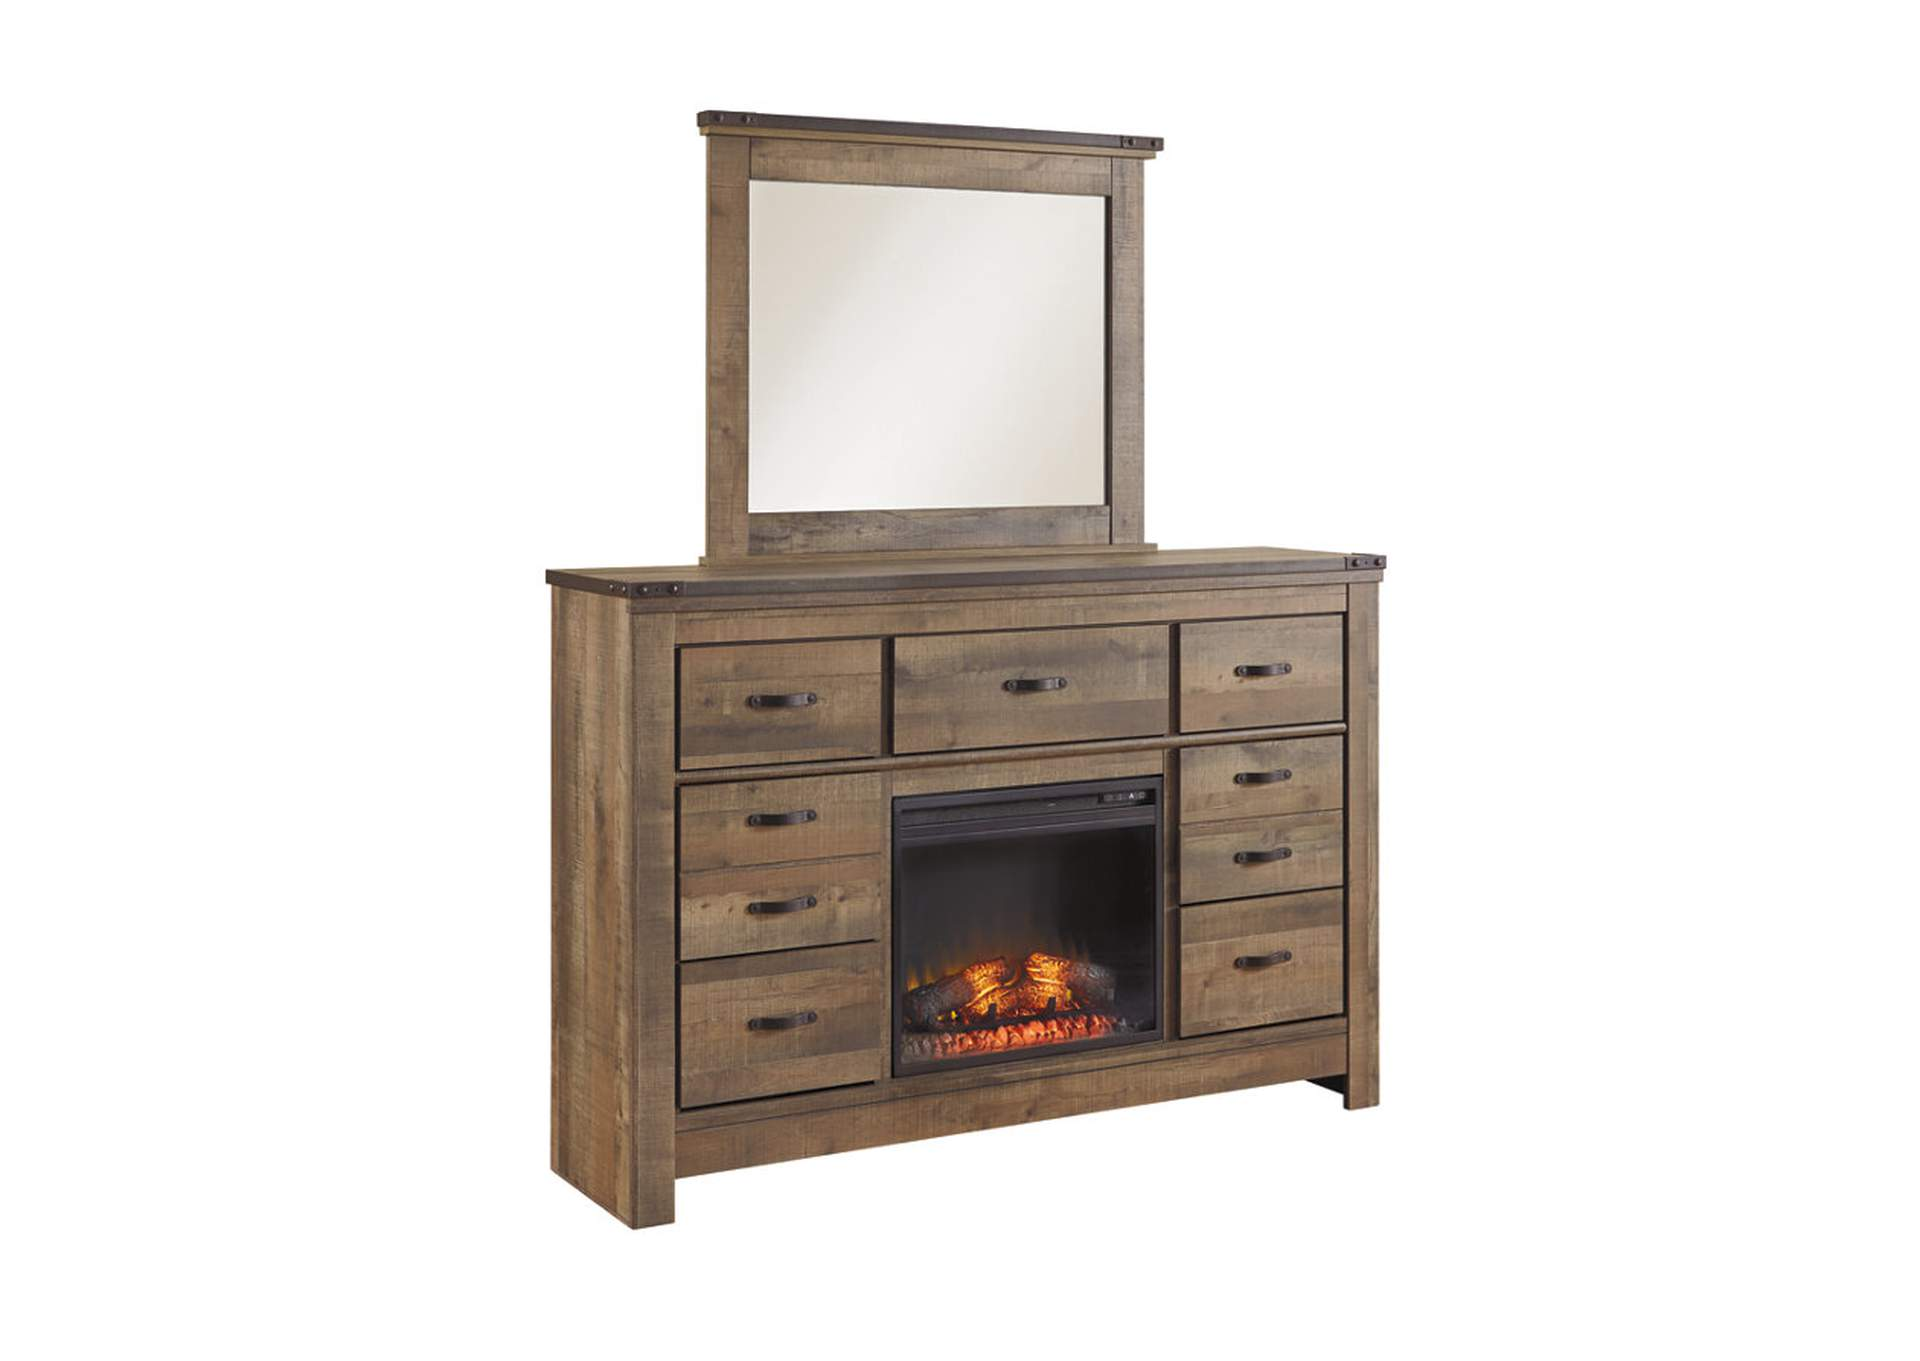 Furniture exchange trinell brown dresser w fireplace insert for Furniture exchange